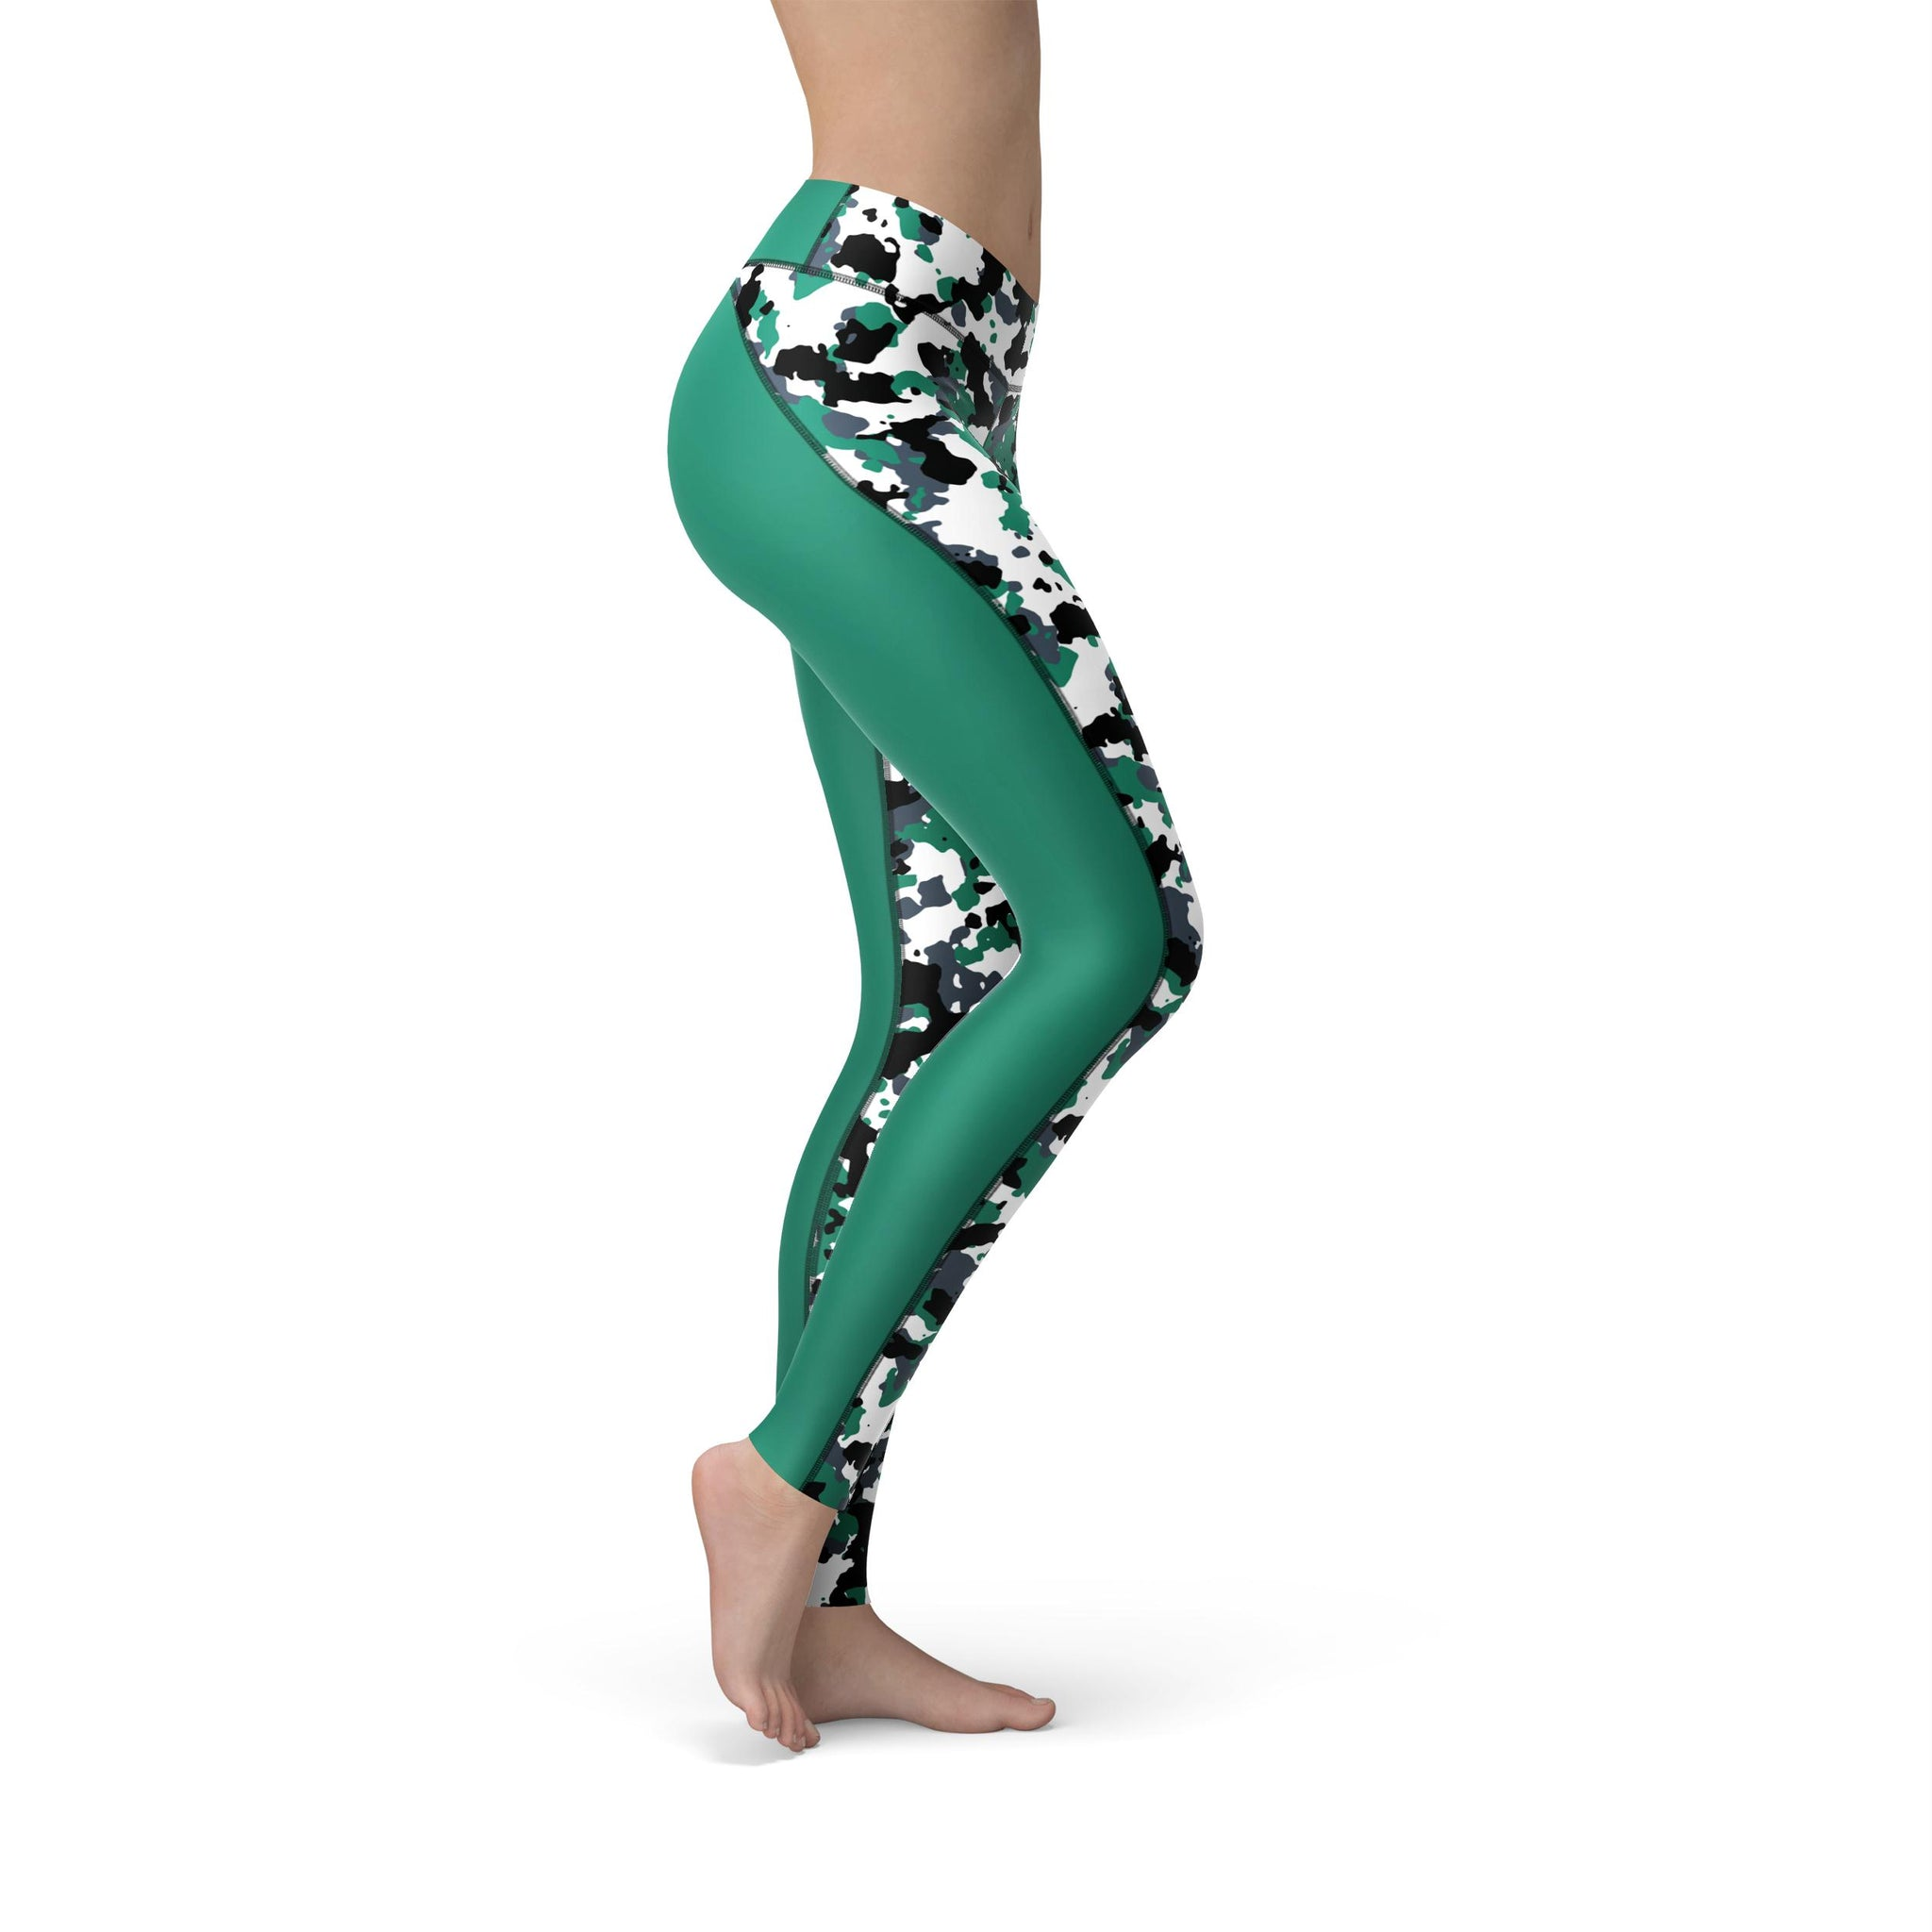 High-Waist Pastel Green Camouflage Yoga Pants